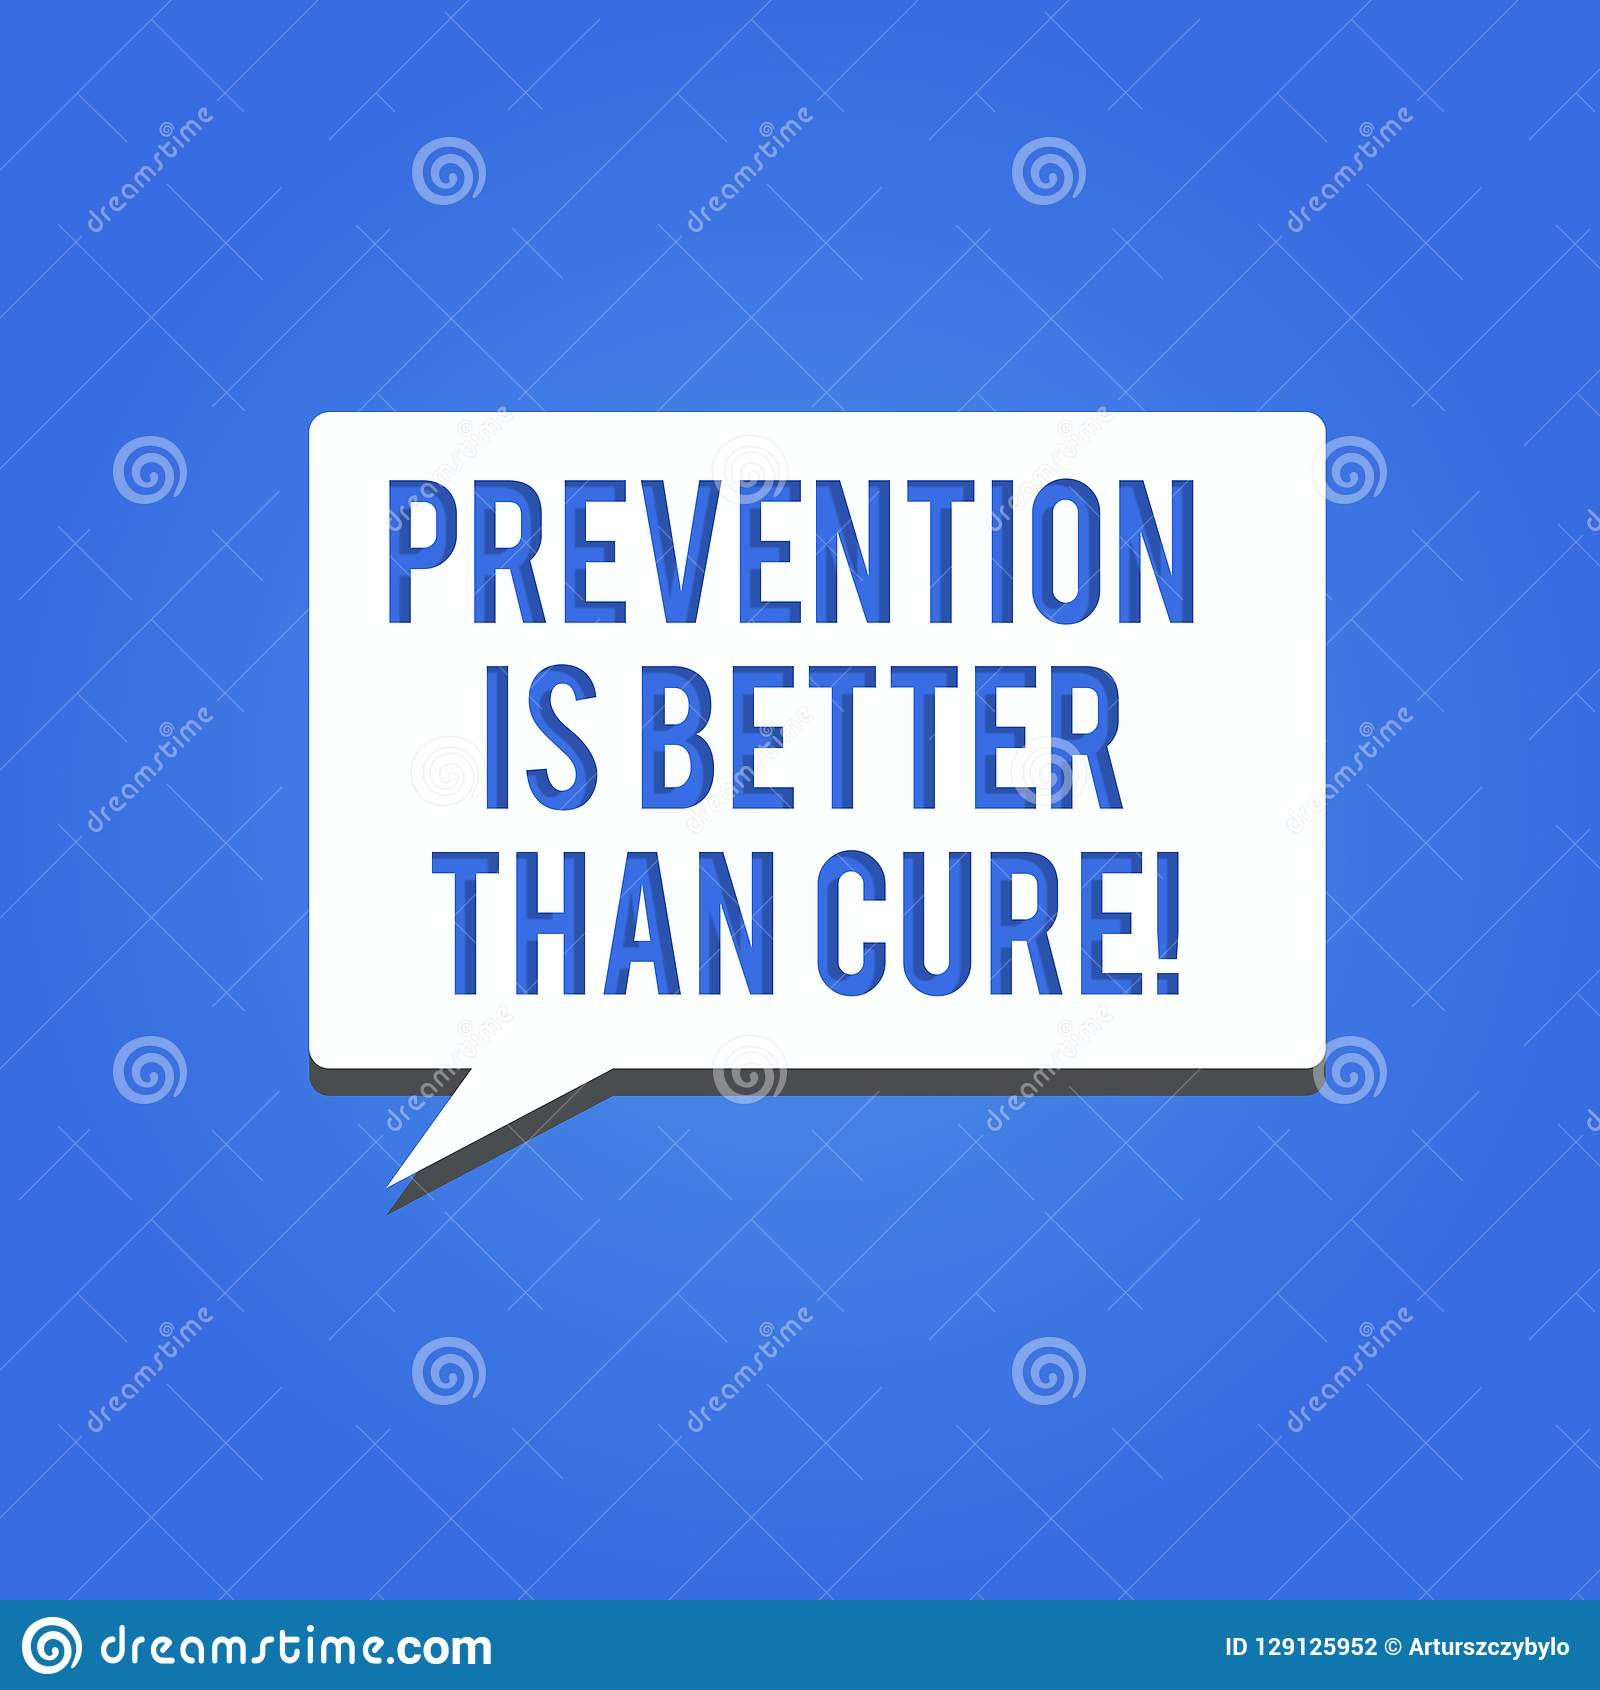 prevention is better than precaution